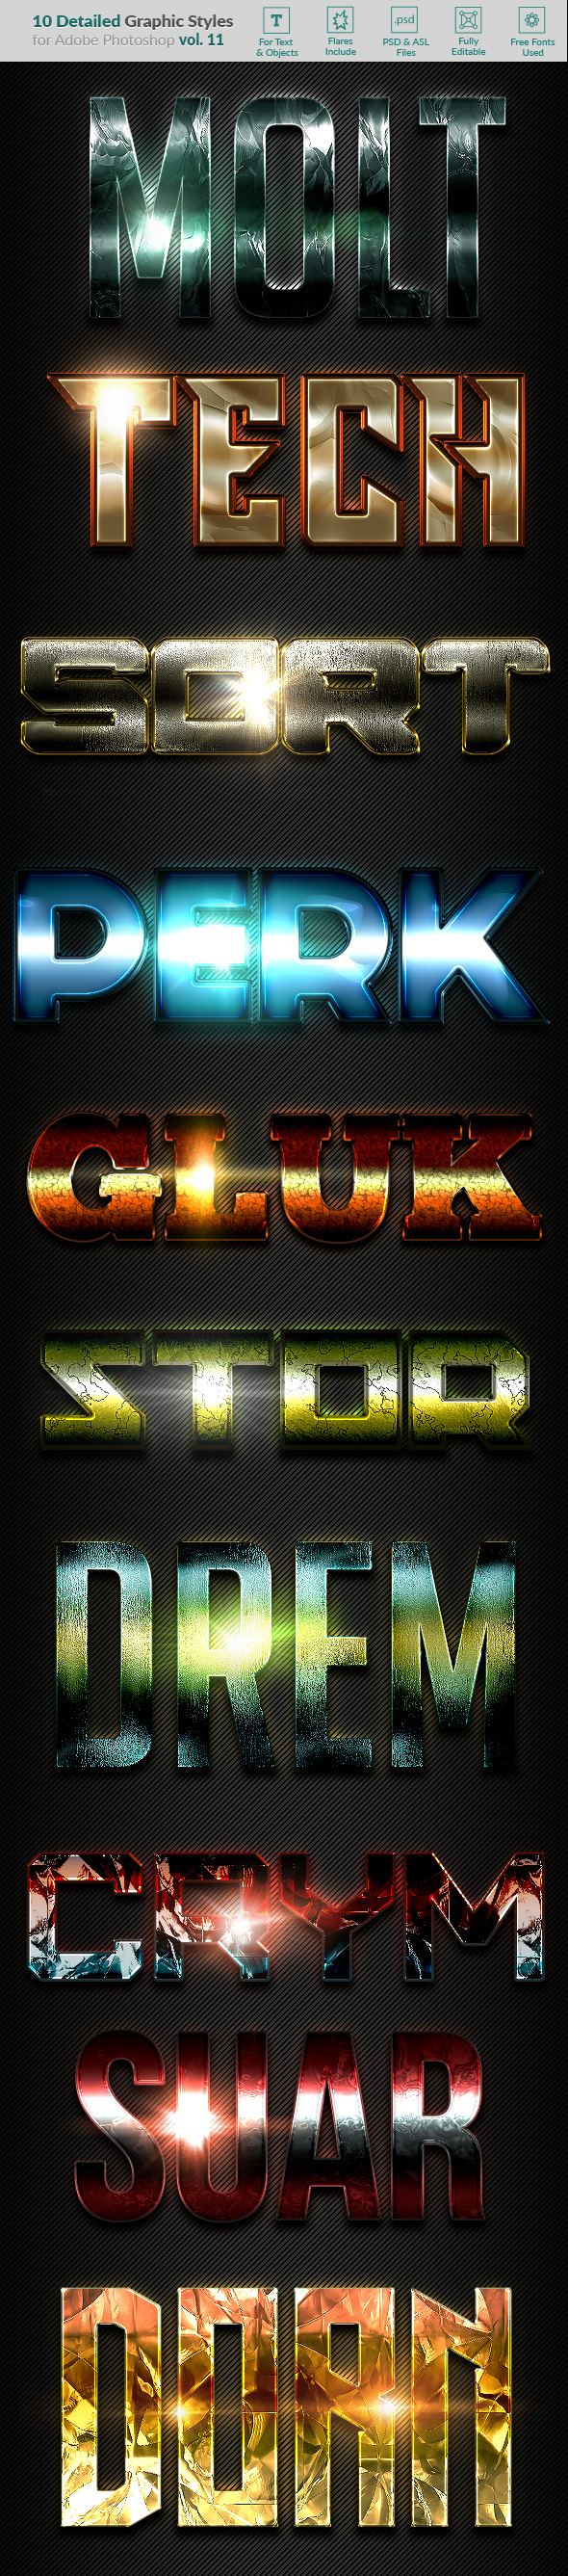 10 Text Effects Vol. 11 - Styles Photoshop